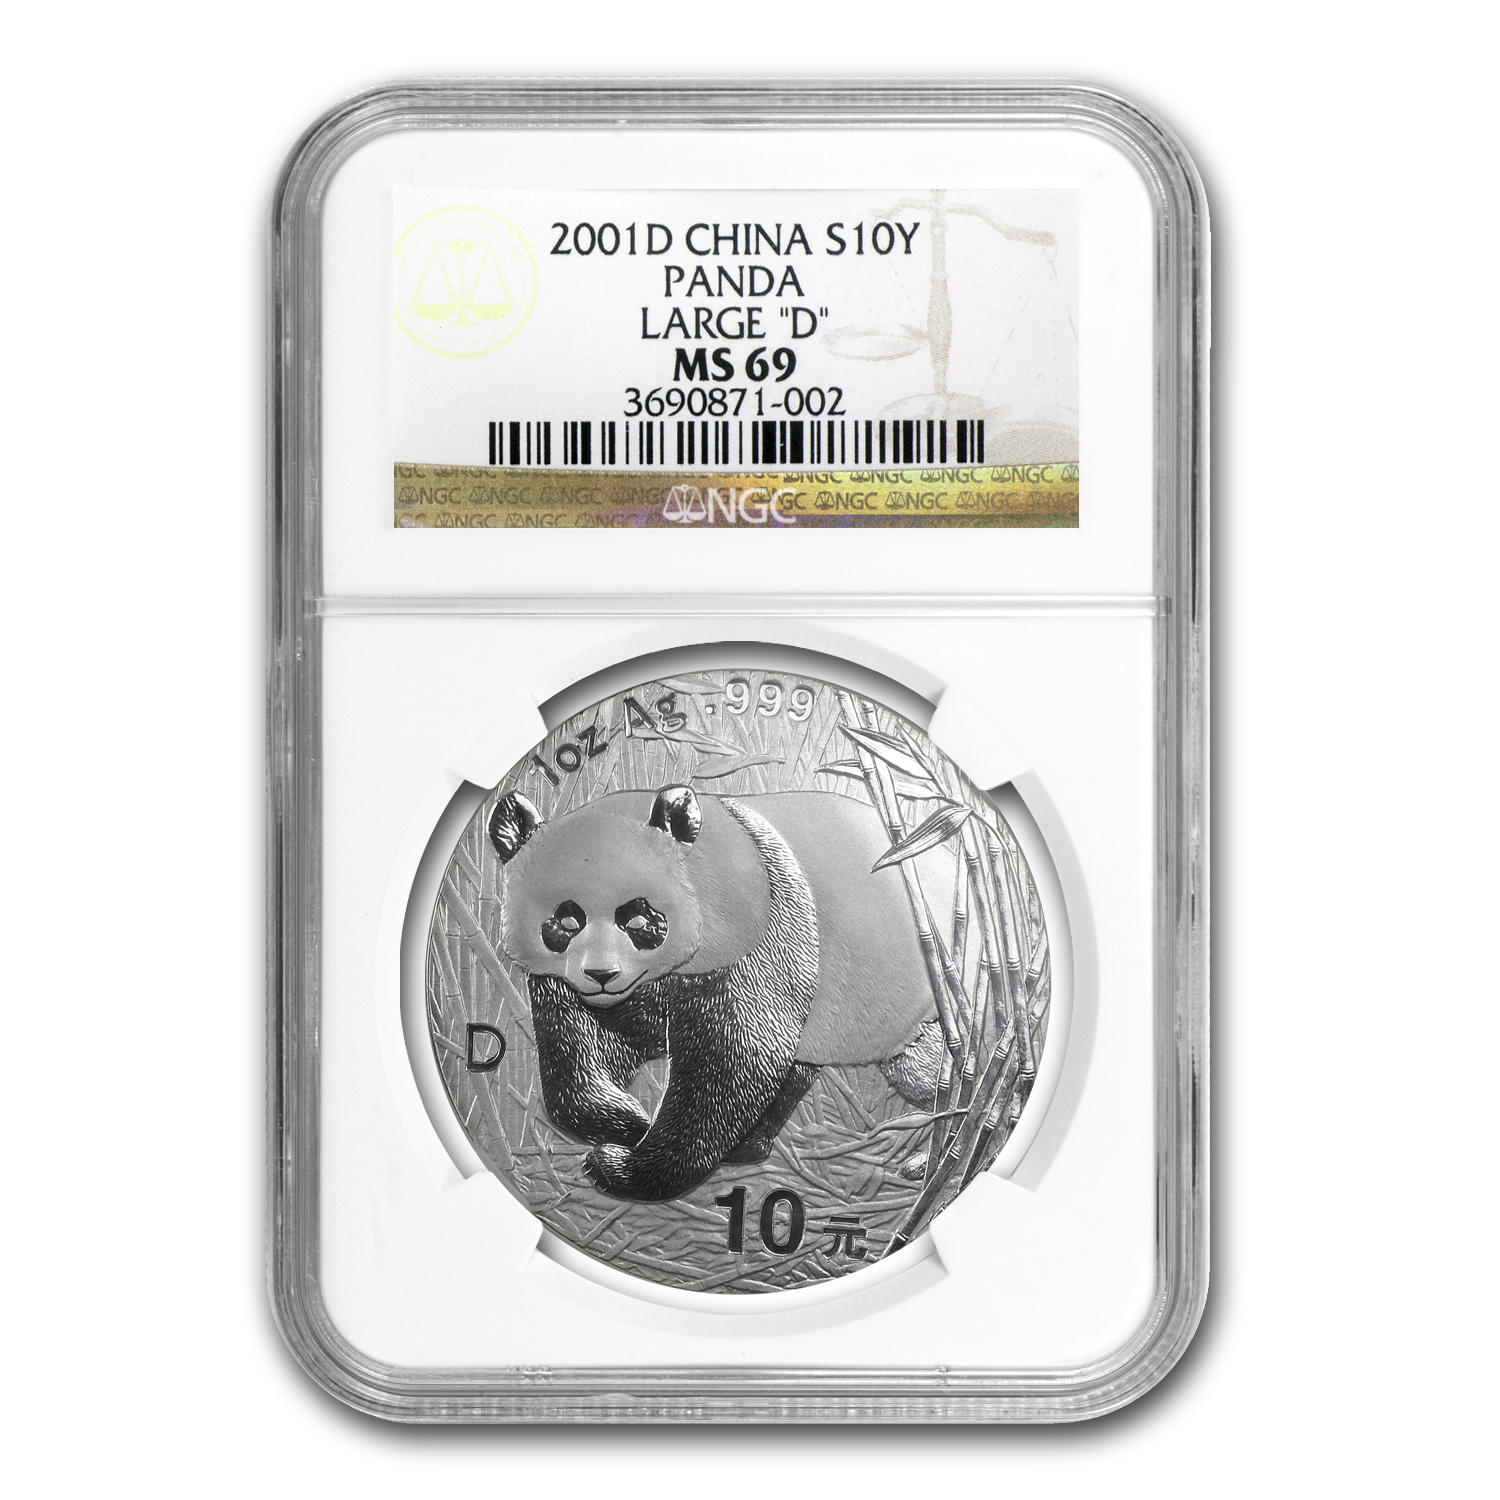 2001-D 1 oz Silver Chinese Panda - MS-69 NGC Large D